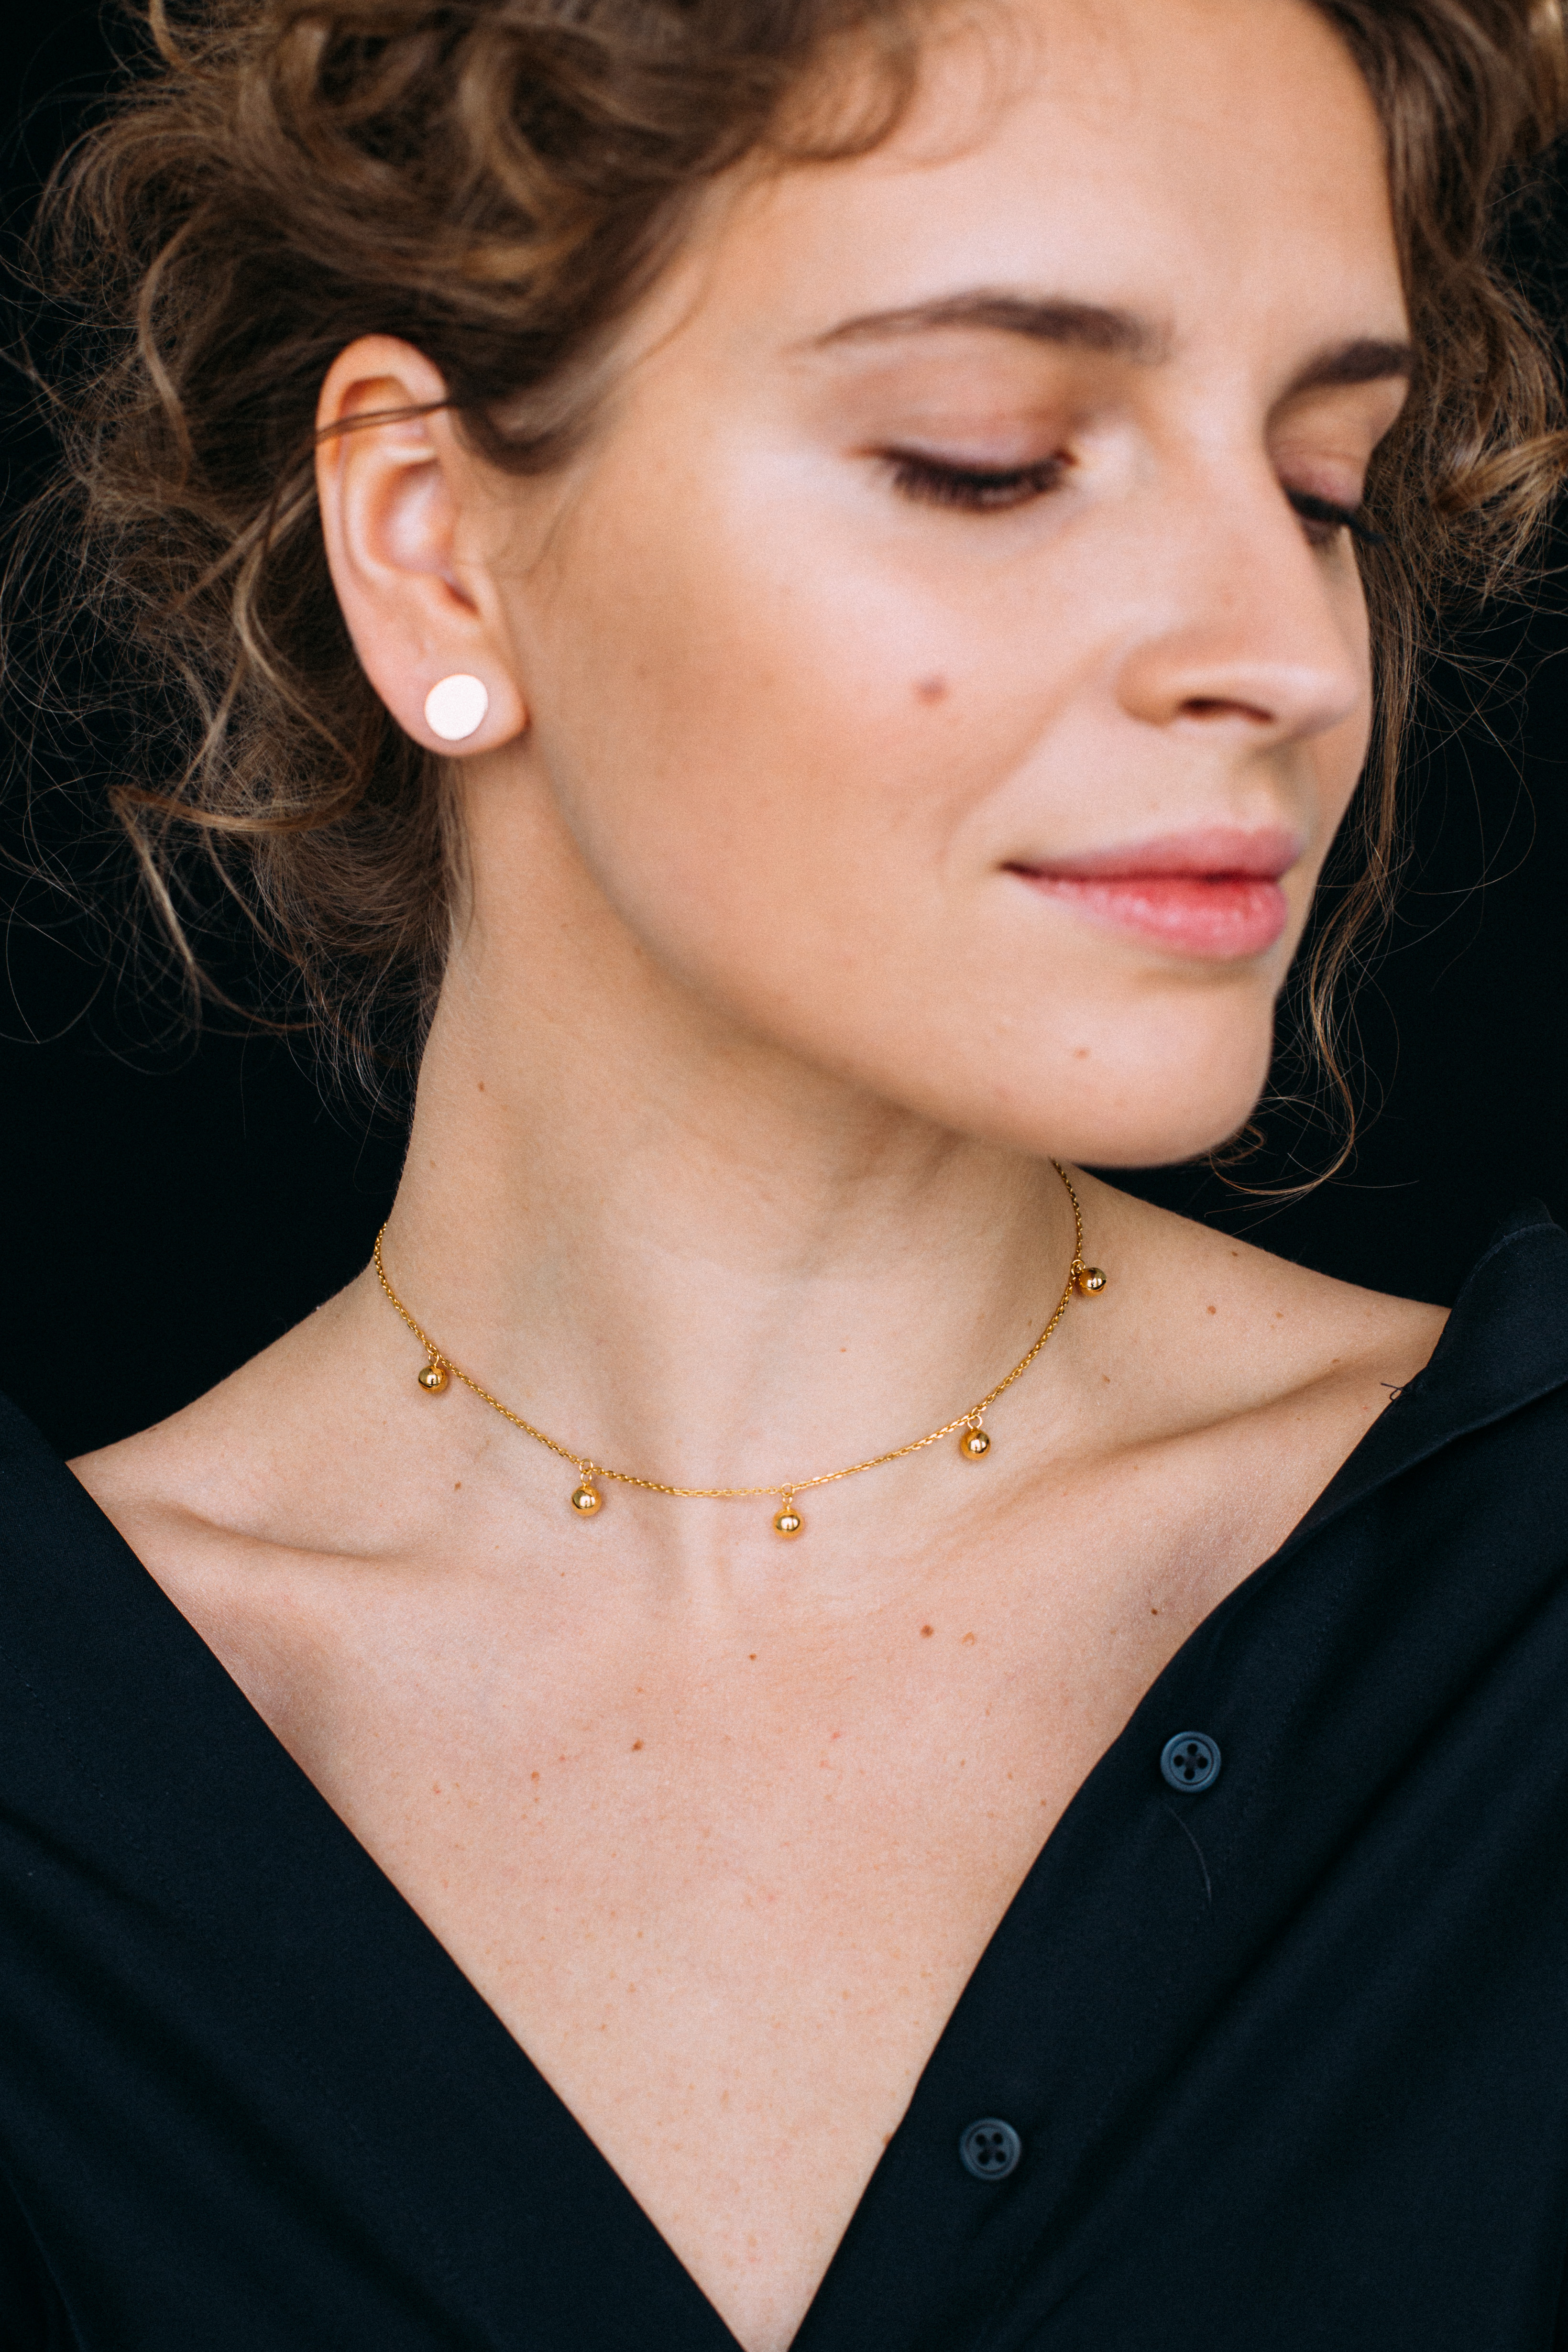 5 Balls Necklace - Yellow Gold by Guzema Fine Jewellery on curated-crowd.com